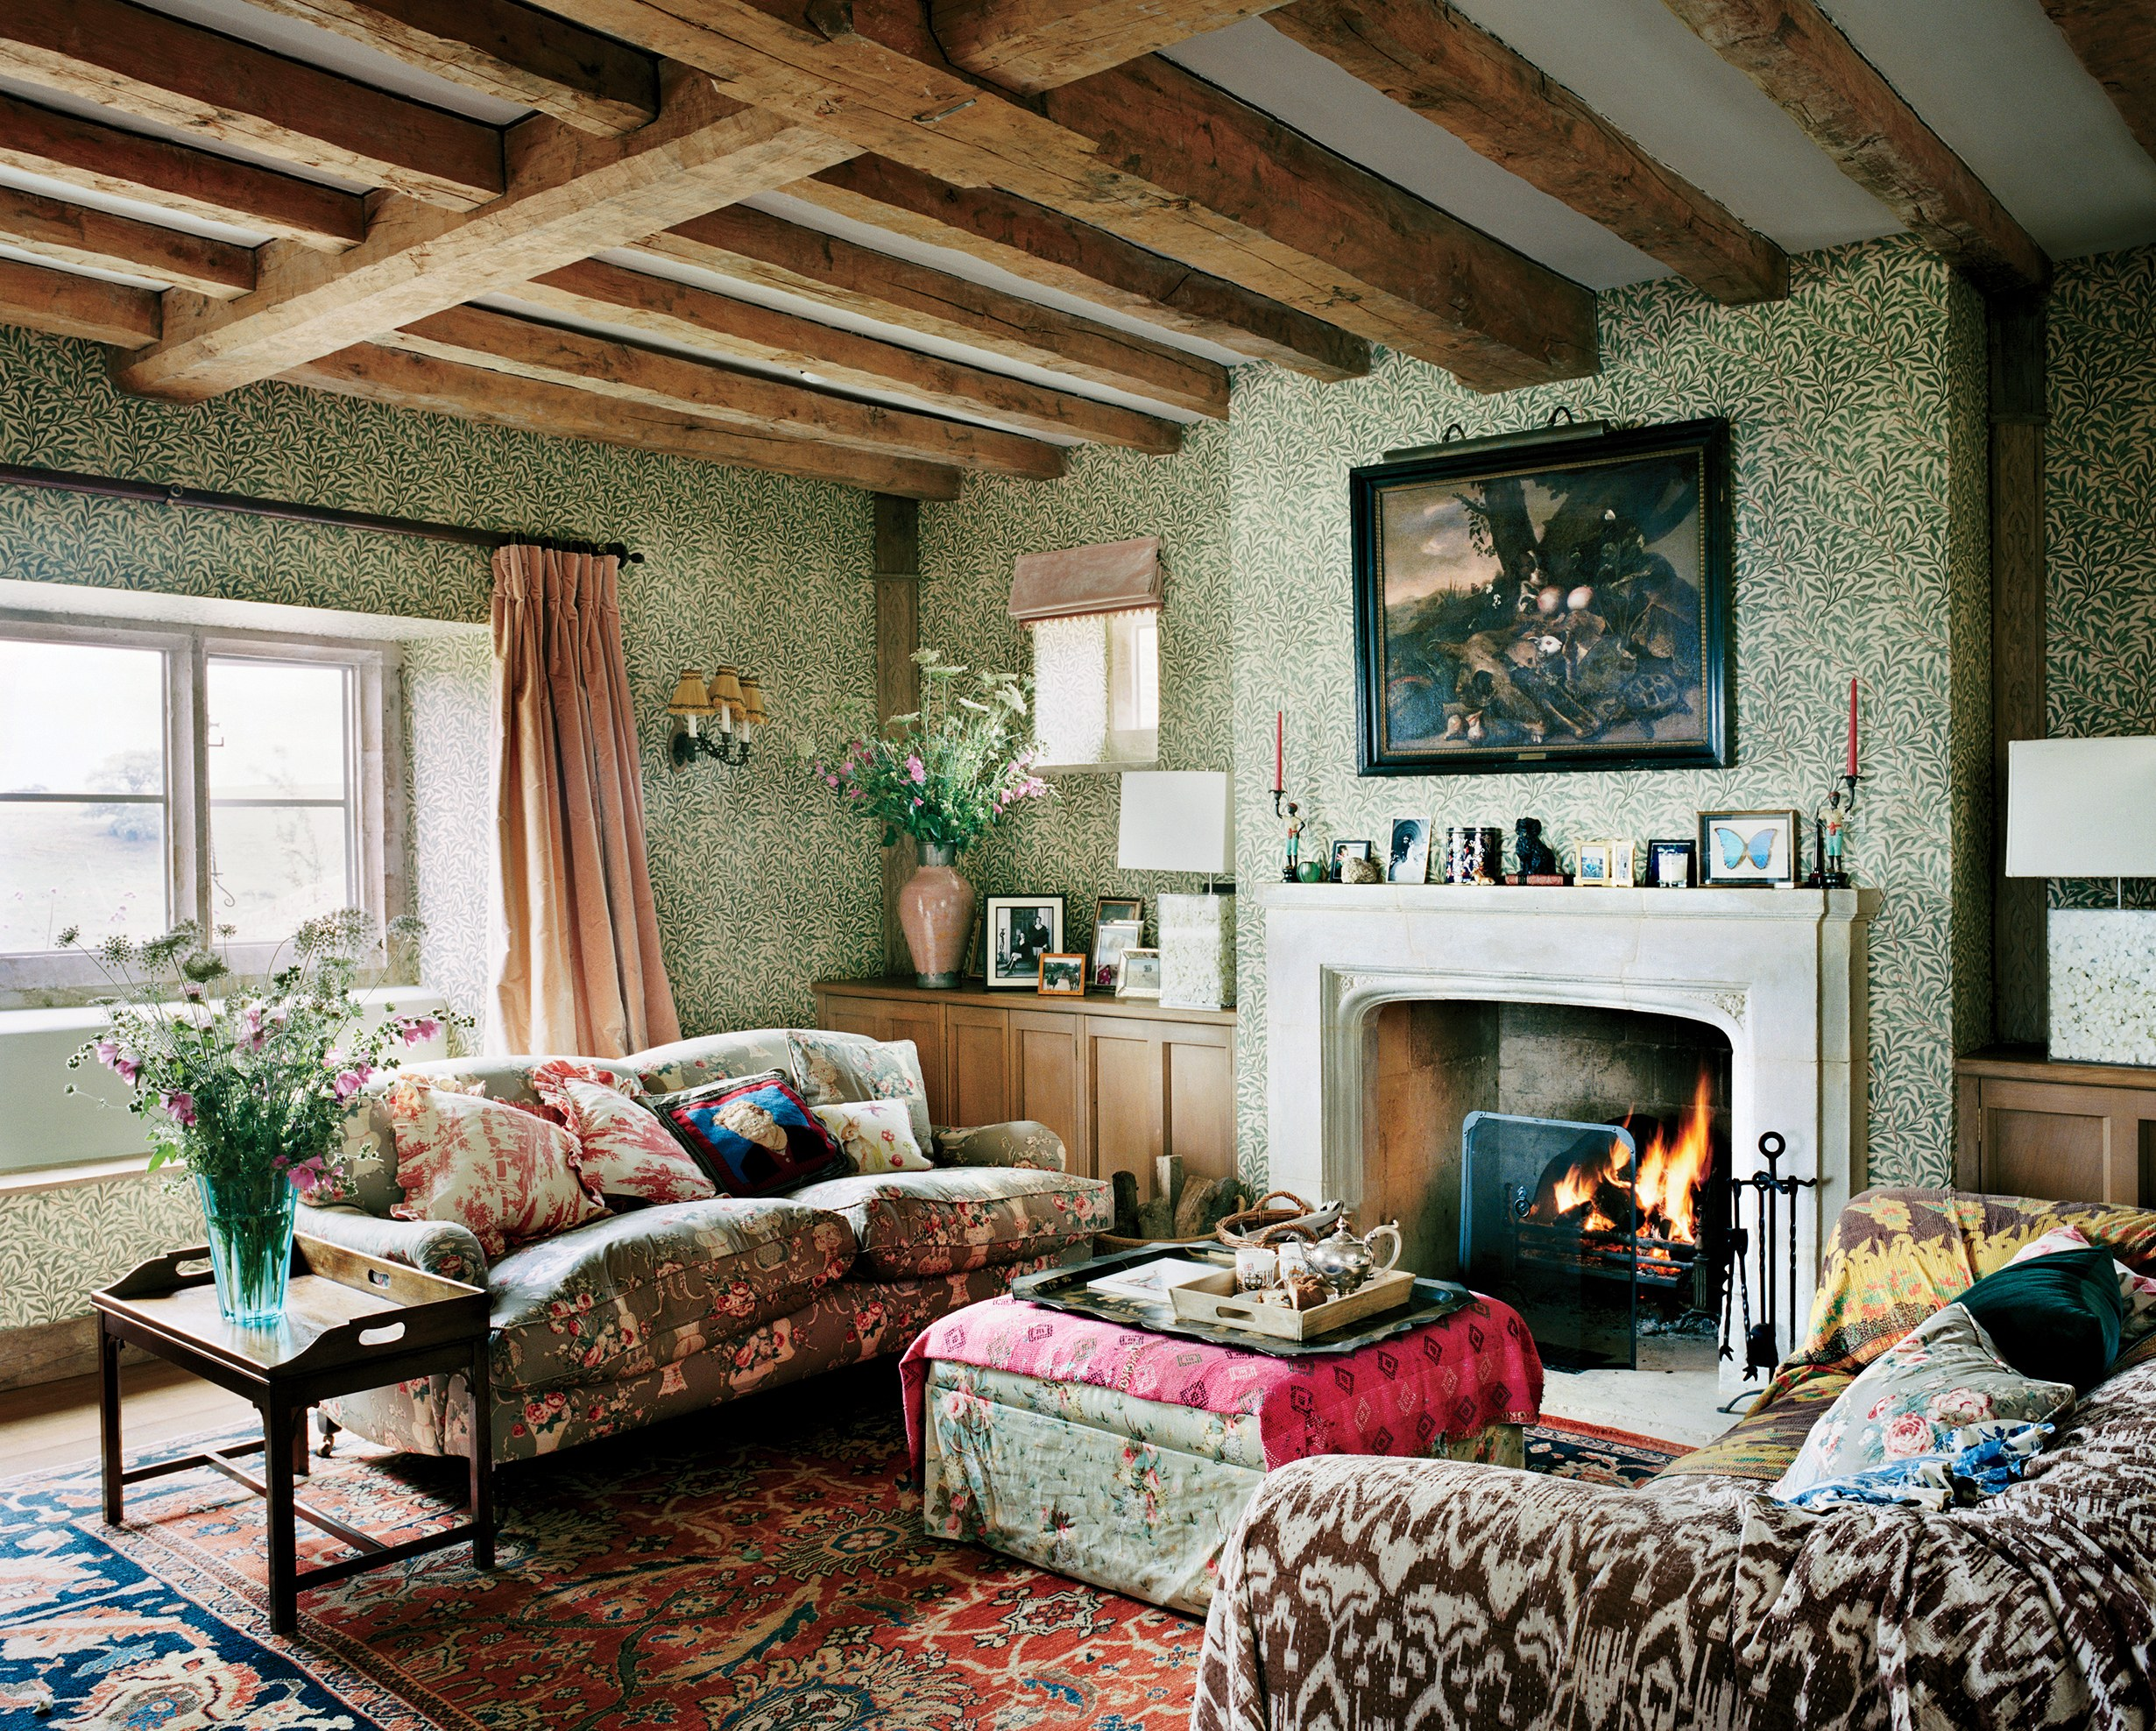 Plum Sykes English Country House William Morris Wallpaper Willow Boughs Chintz Roll Arm Sofa Fireplace Mantle Exposed Beams